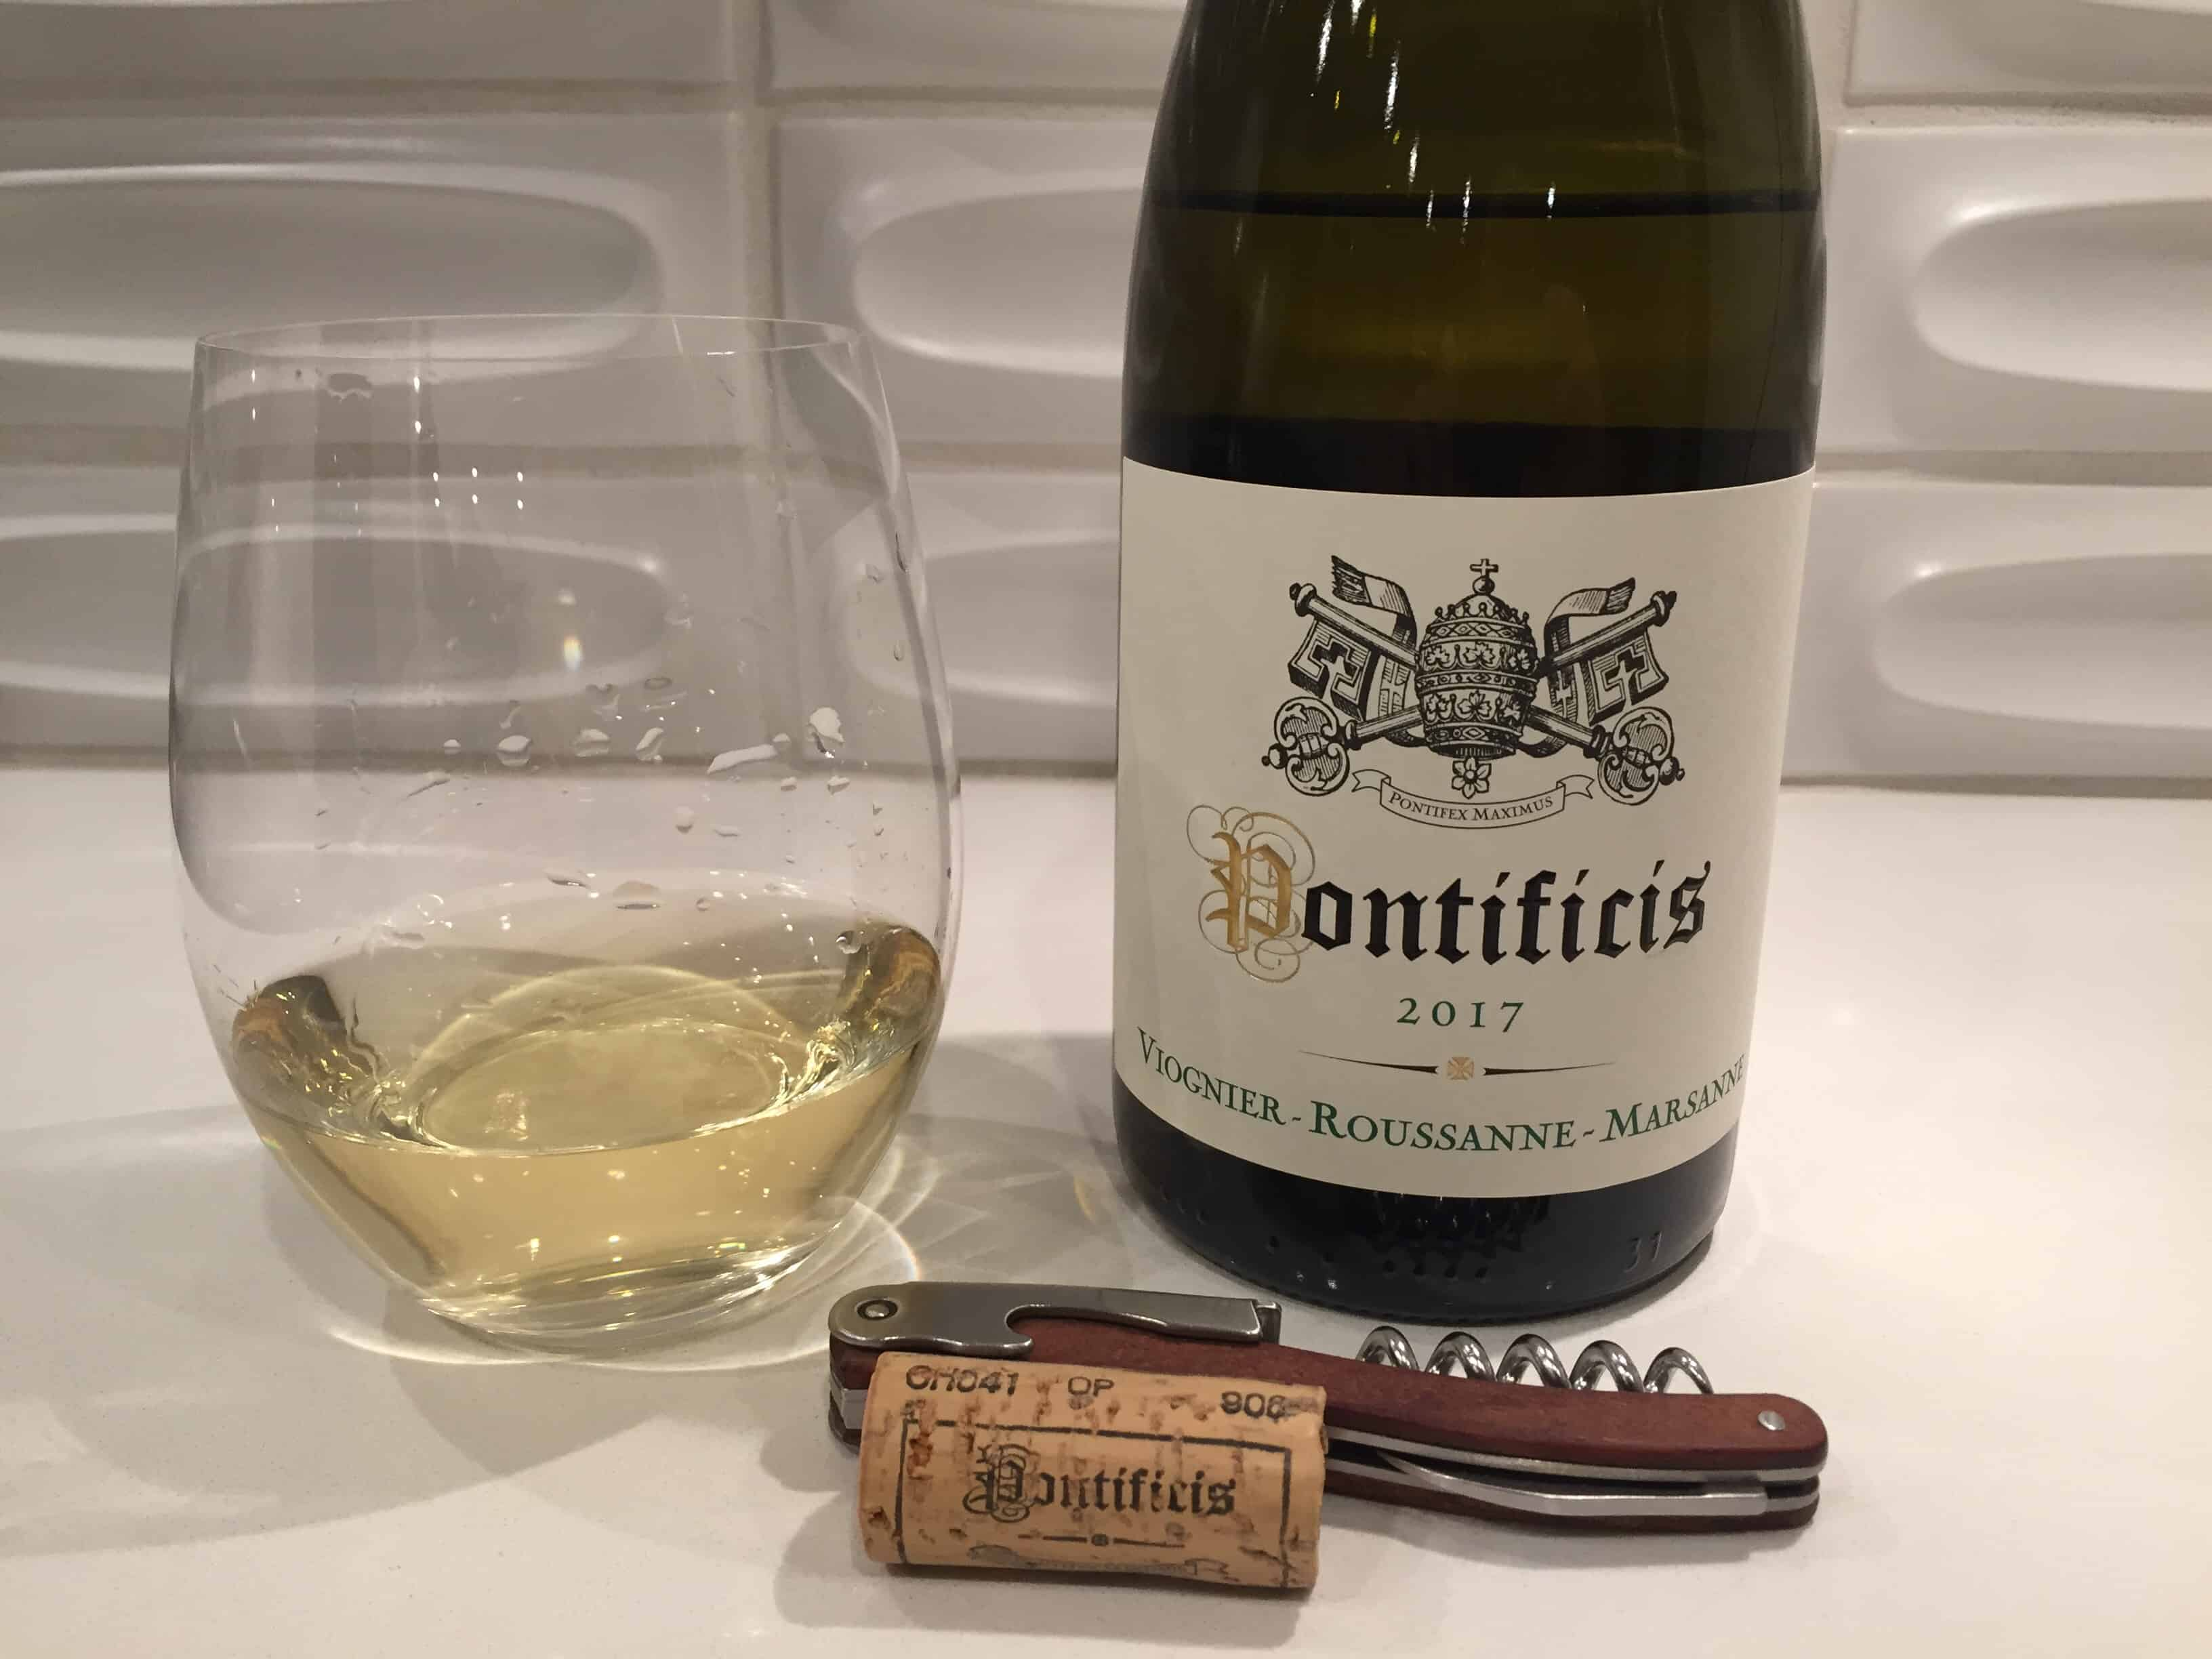 Glass and bottle of Pontificis White Rhone blend from Trader Joe's